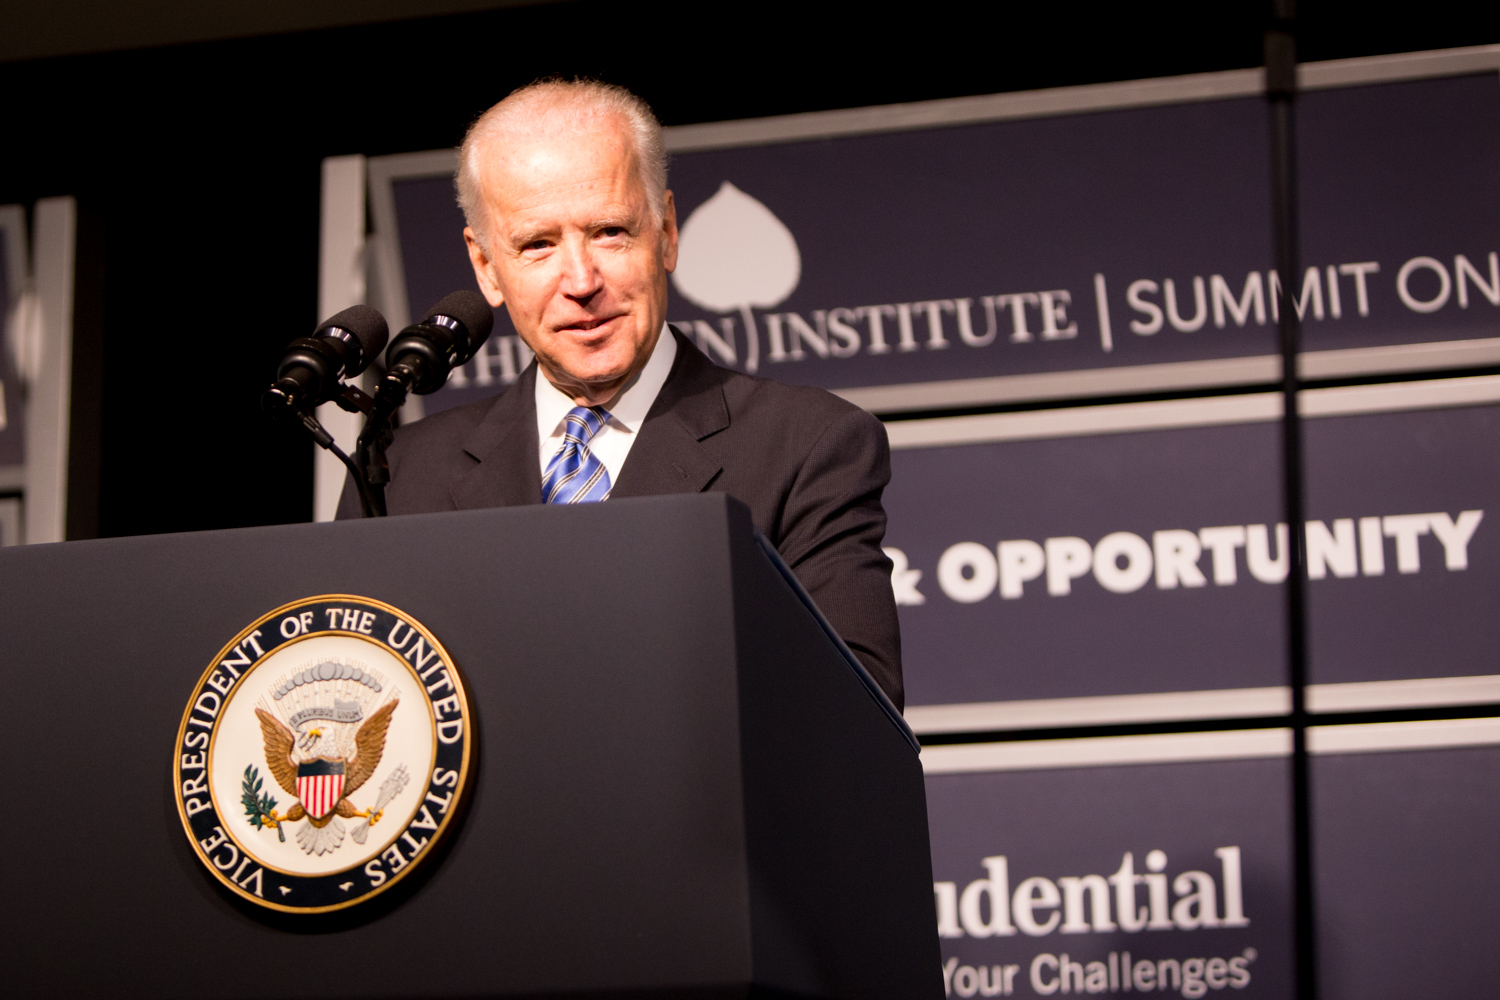 Joe Biden at the Summit on Inequality and Opportunity